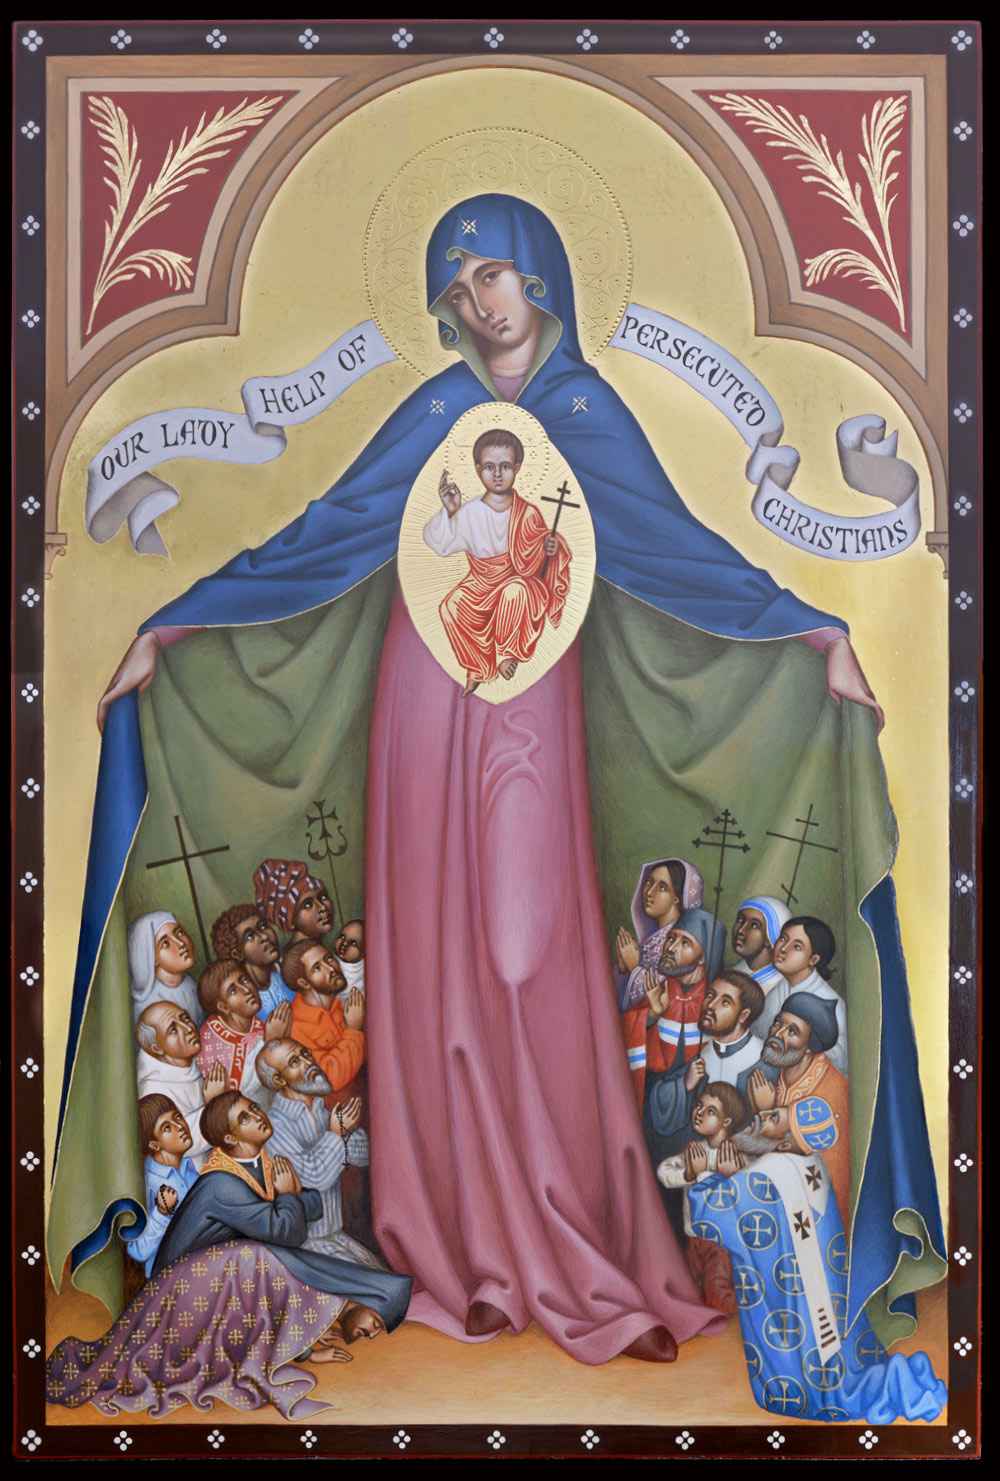 2018-Icon-Our-Lady-Help-of-Persecuted-Christians.jpg